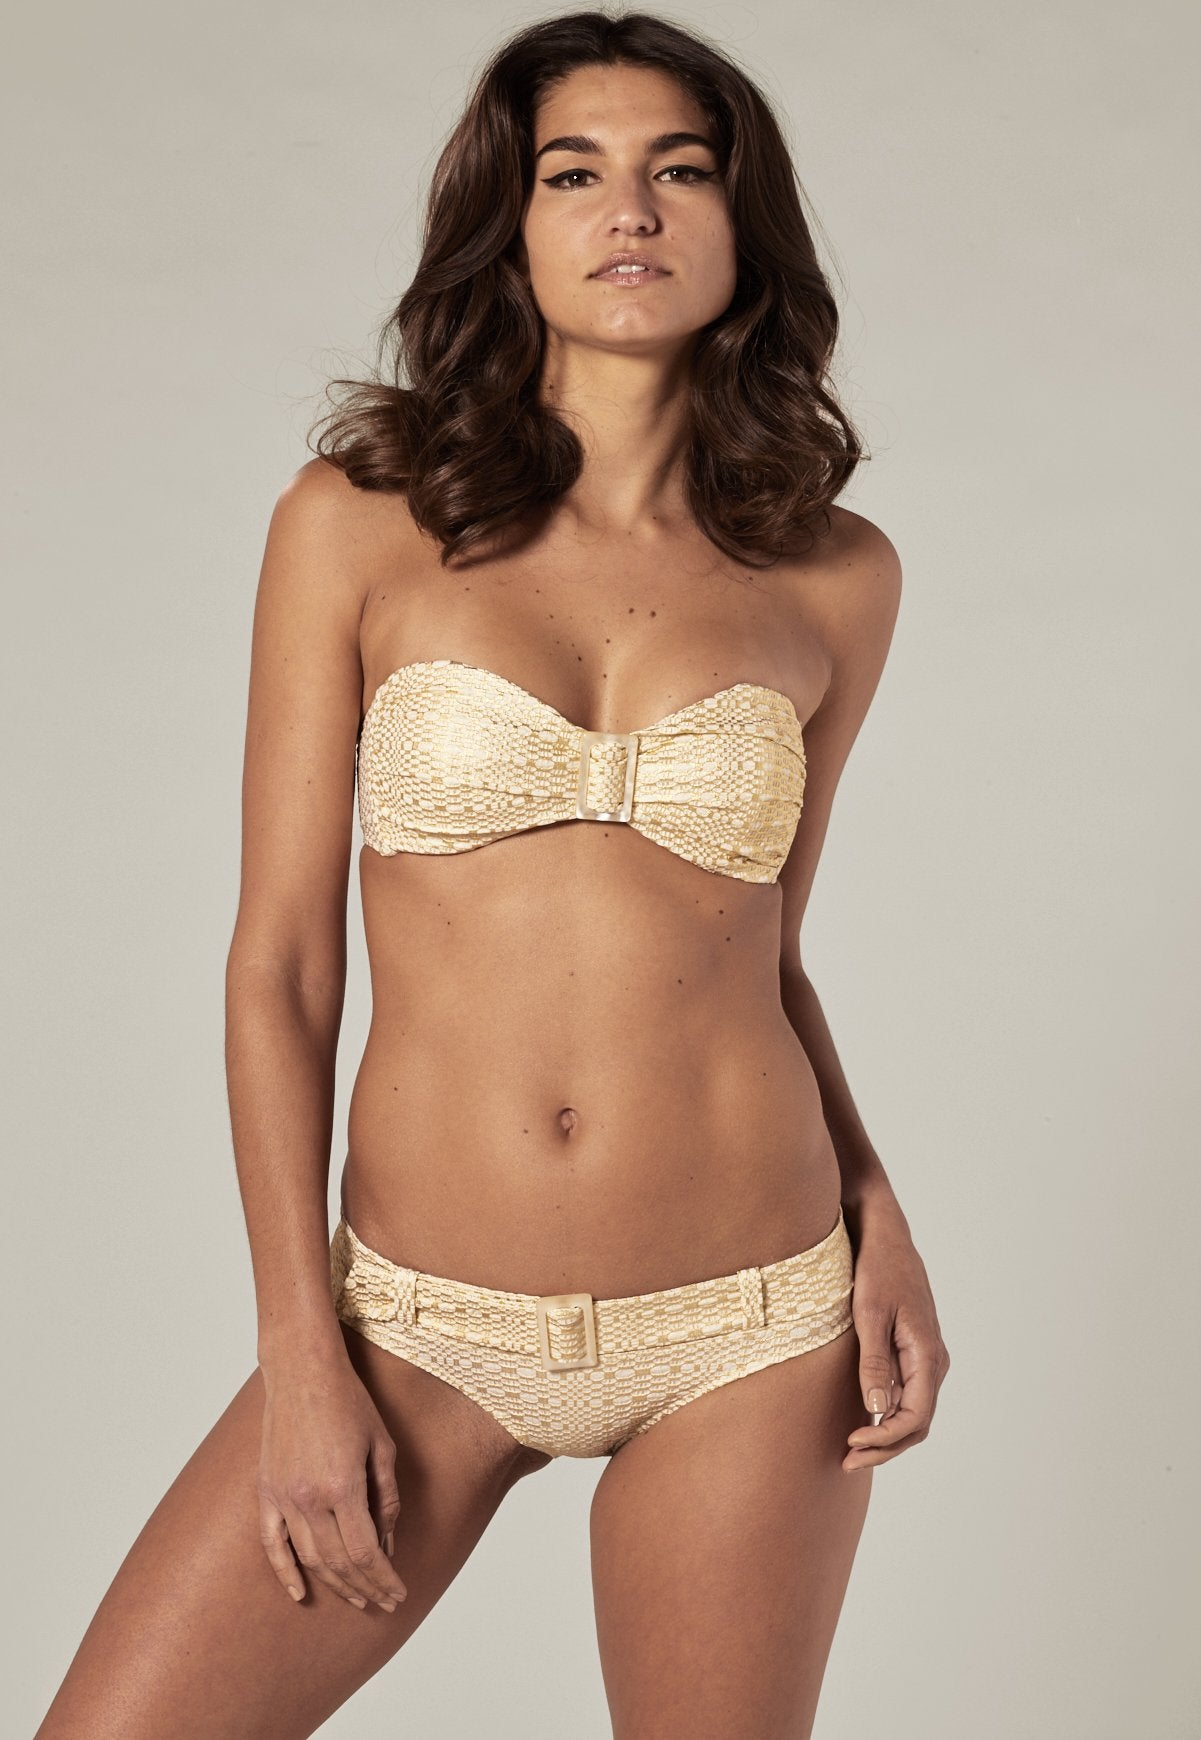 BUCKLE BANDEAU GOLD/CREAM SEERSUCKER BIKINI